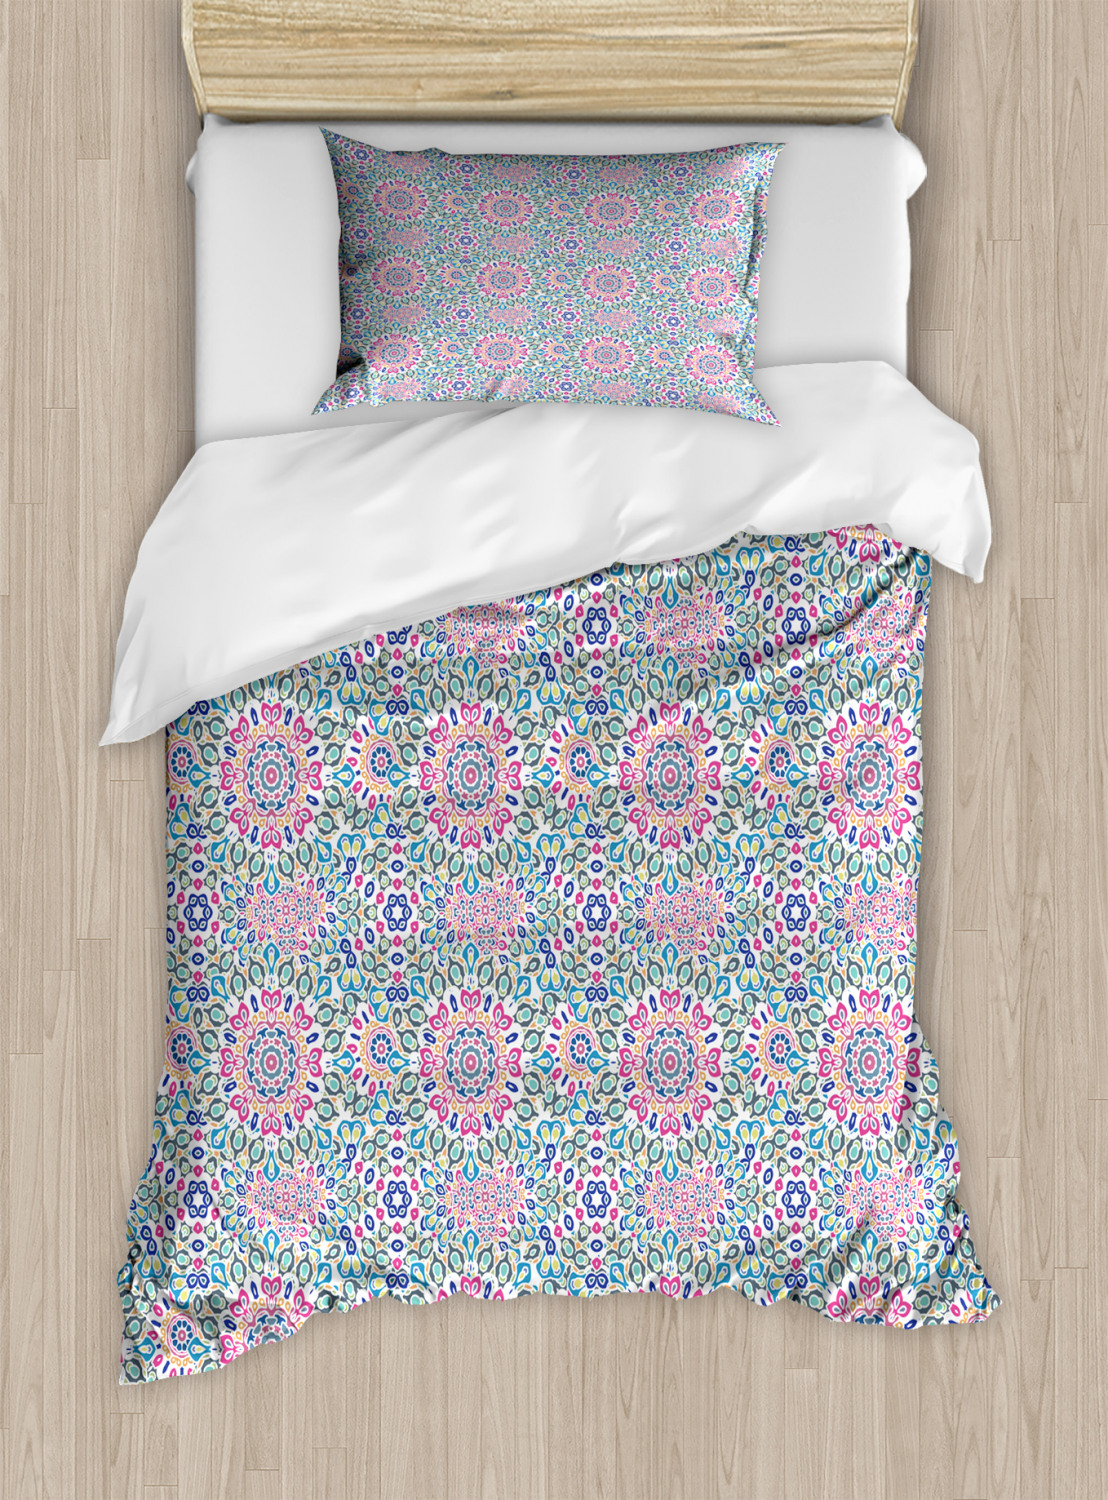 Timeless-Oriental-Duvet-Cover-Set-Twin-Queen-King-Sizes-with-Pillow-Shams thumbnail 40